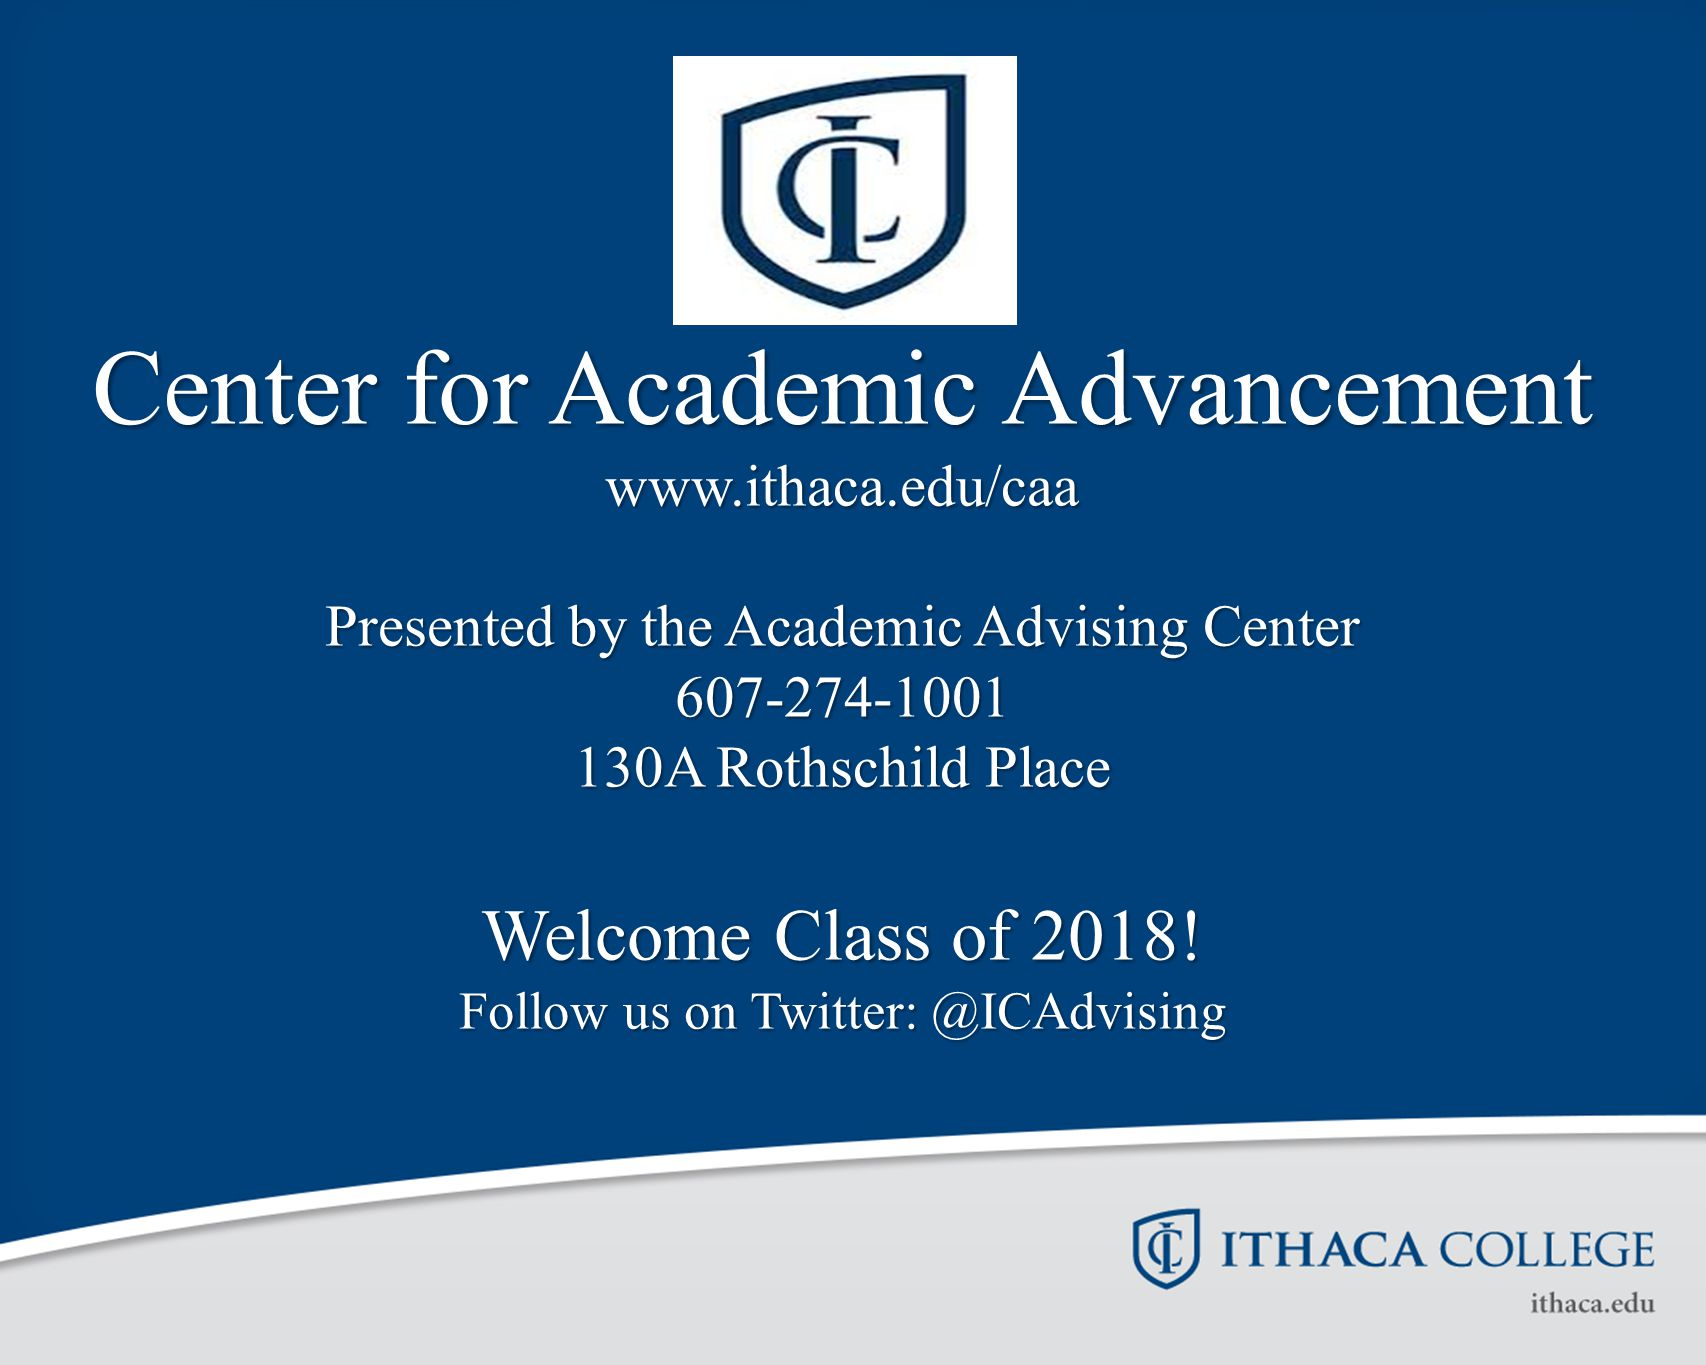 Center for Academic Advancement www.ithaca.edu/caa Presented by the Academic Advising Center 607-274-1001 130A Rothschild Place Welcome Class of 2018!